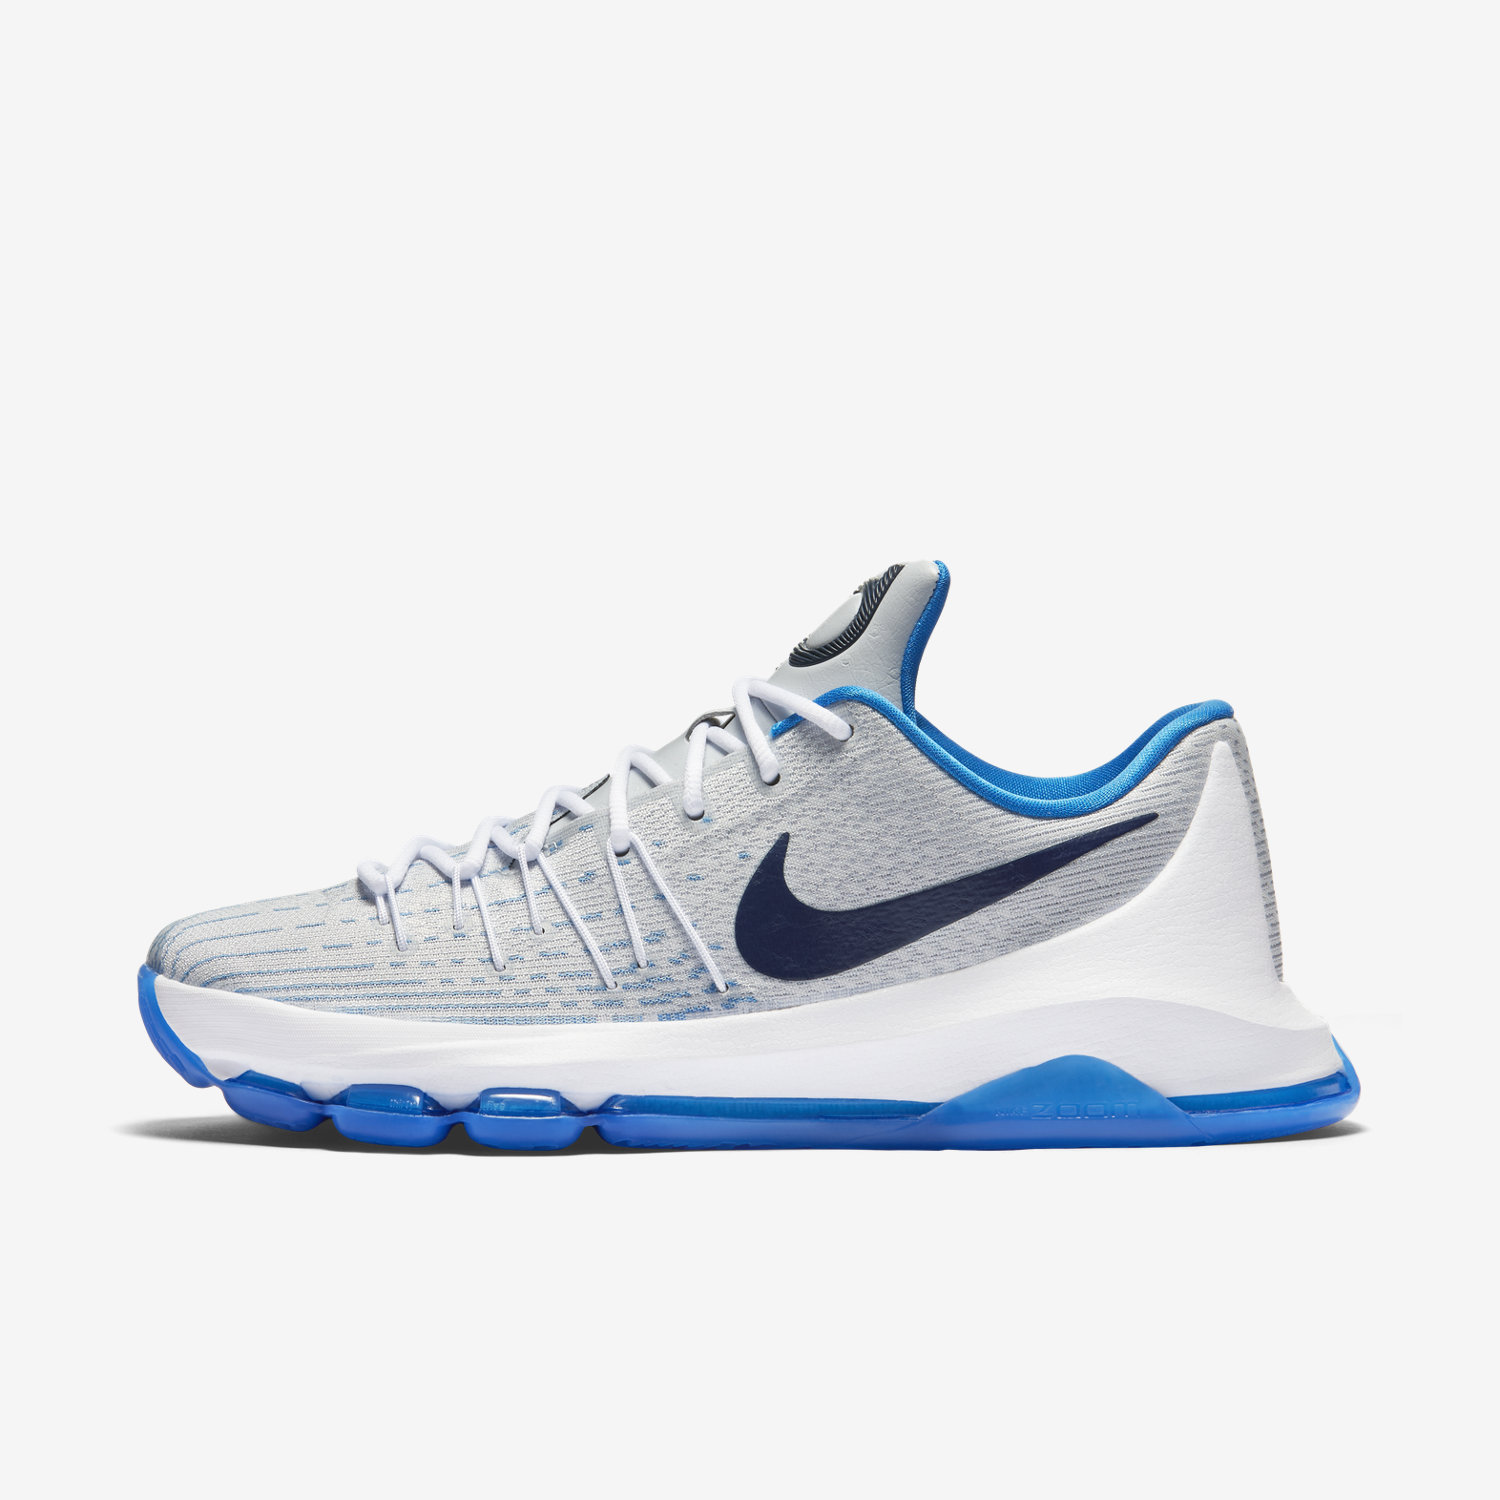 Nike Low Basketball Shoes